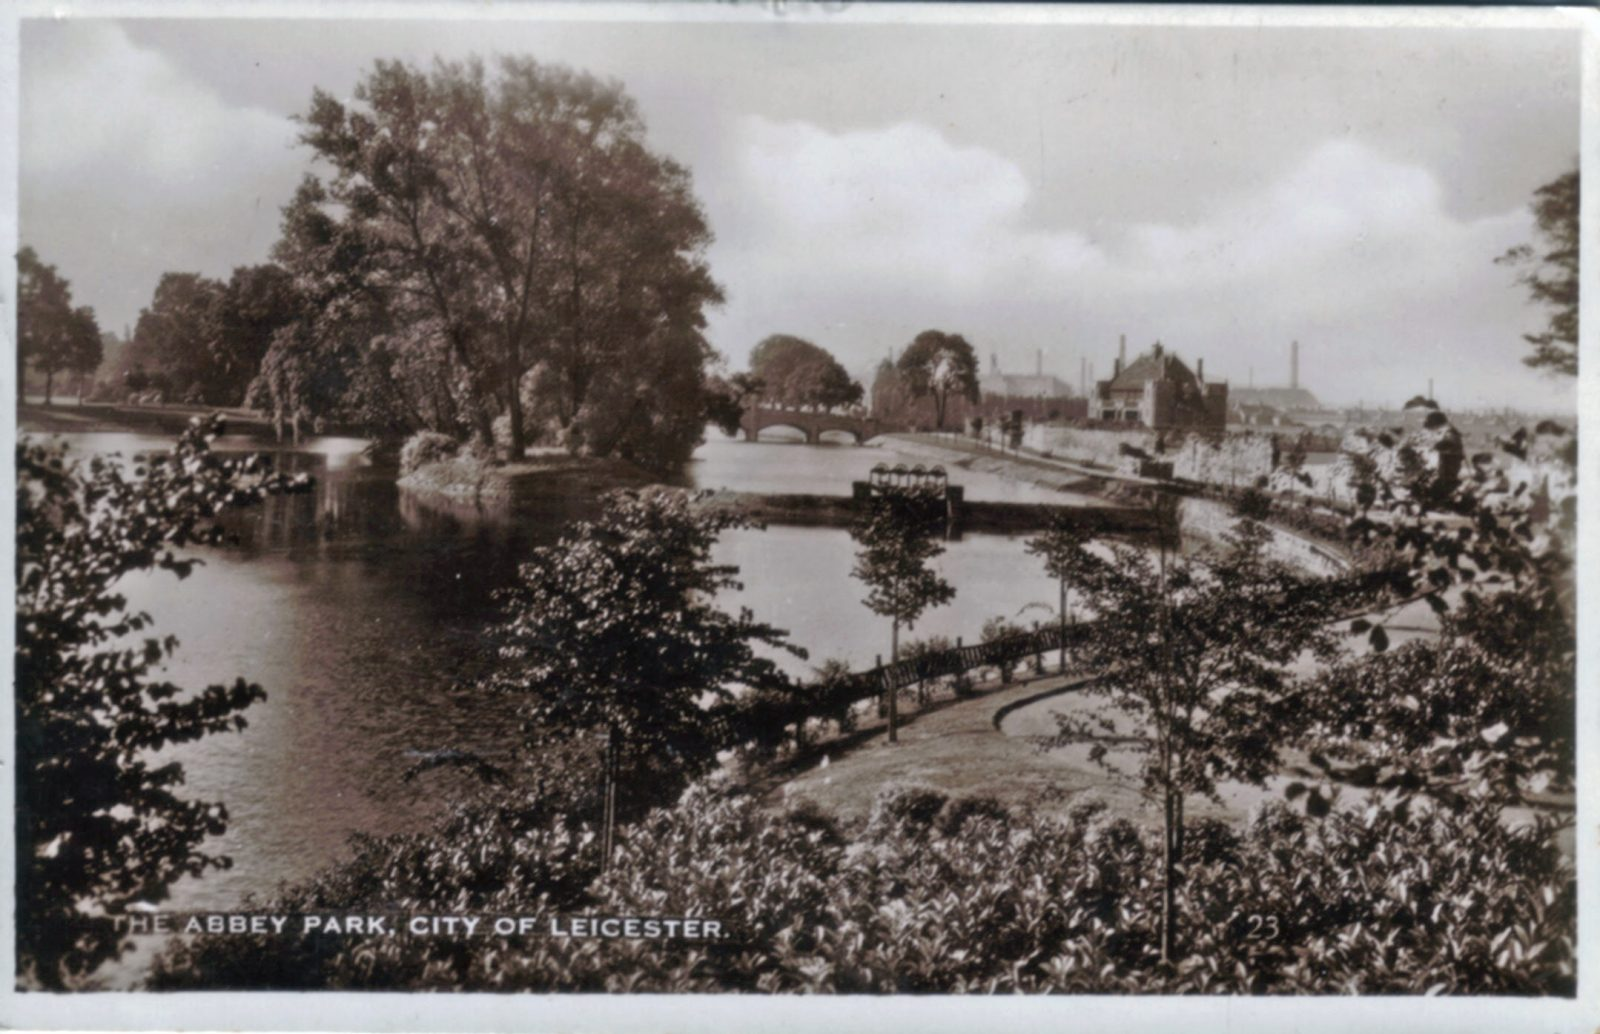 Abbey Park, Leicester. 1921-1940: The lake and River Soar. Distant bridge. Franked 1936 (File:1041)